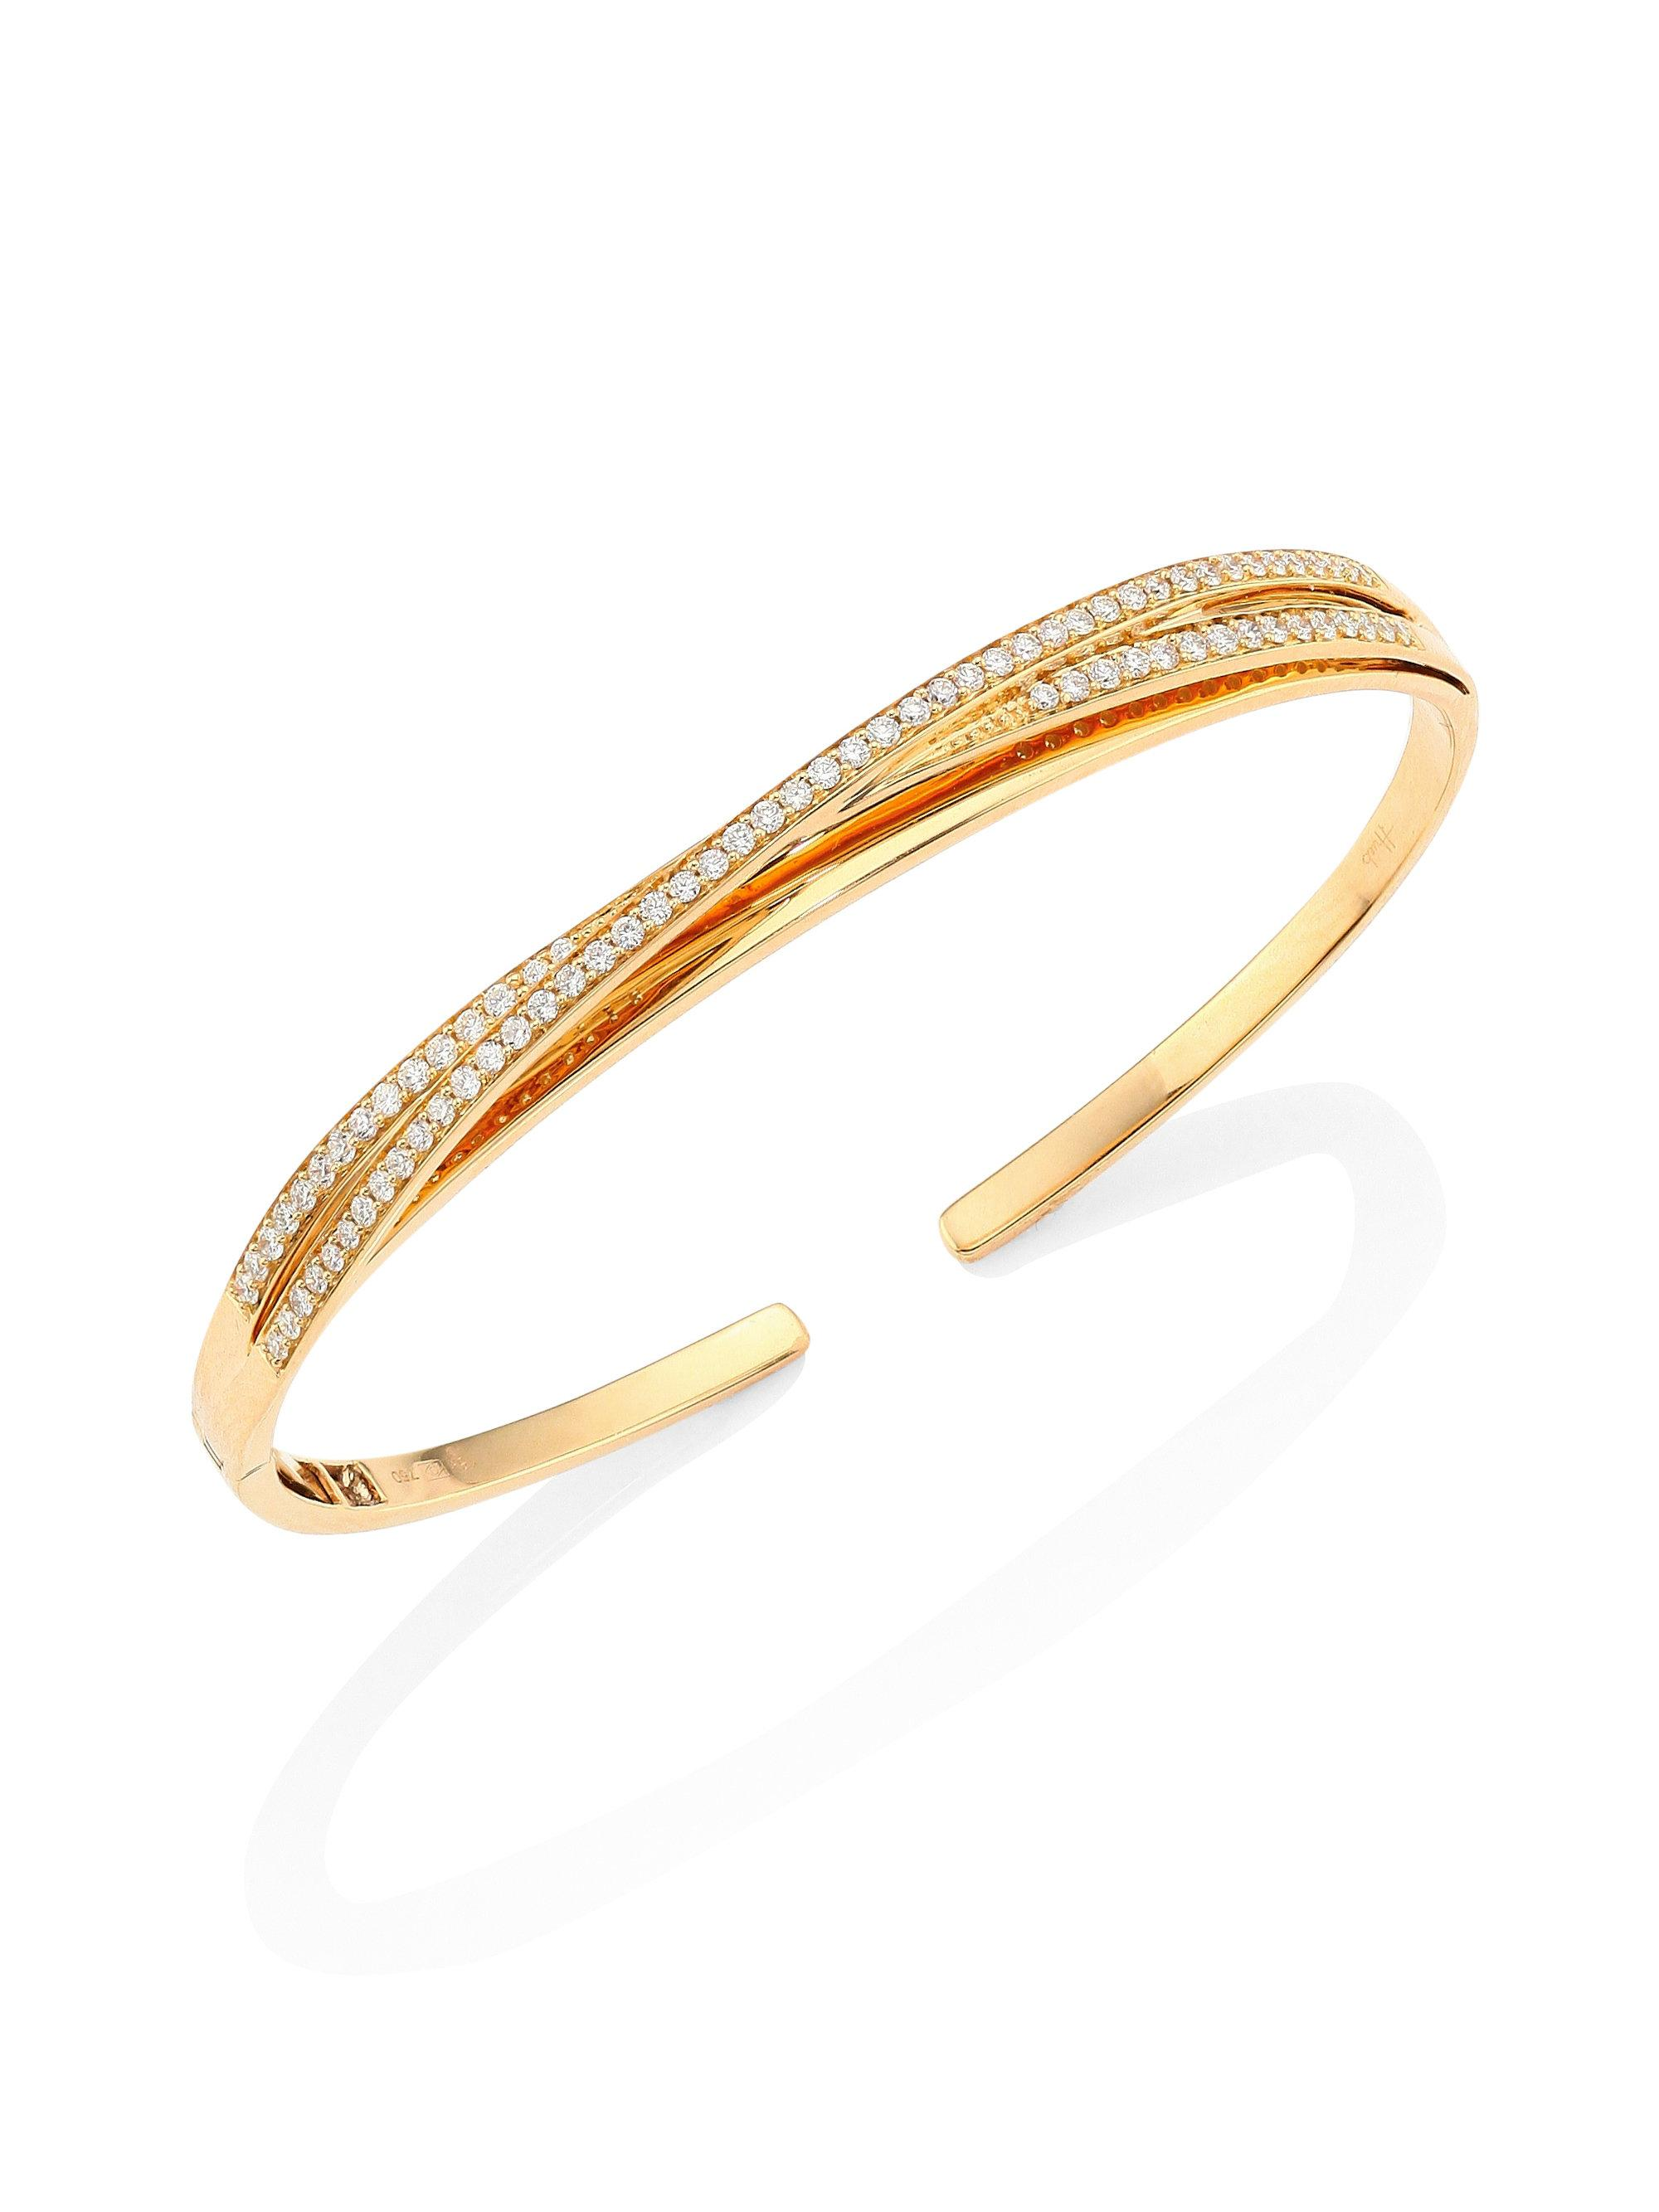 jewellery shop image open bangle burton bee bangles olivia ladies gold all end london